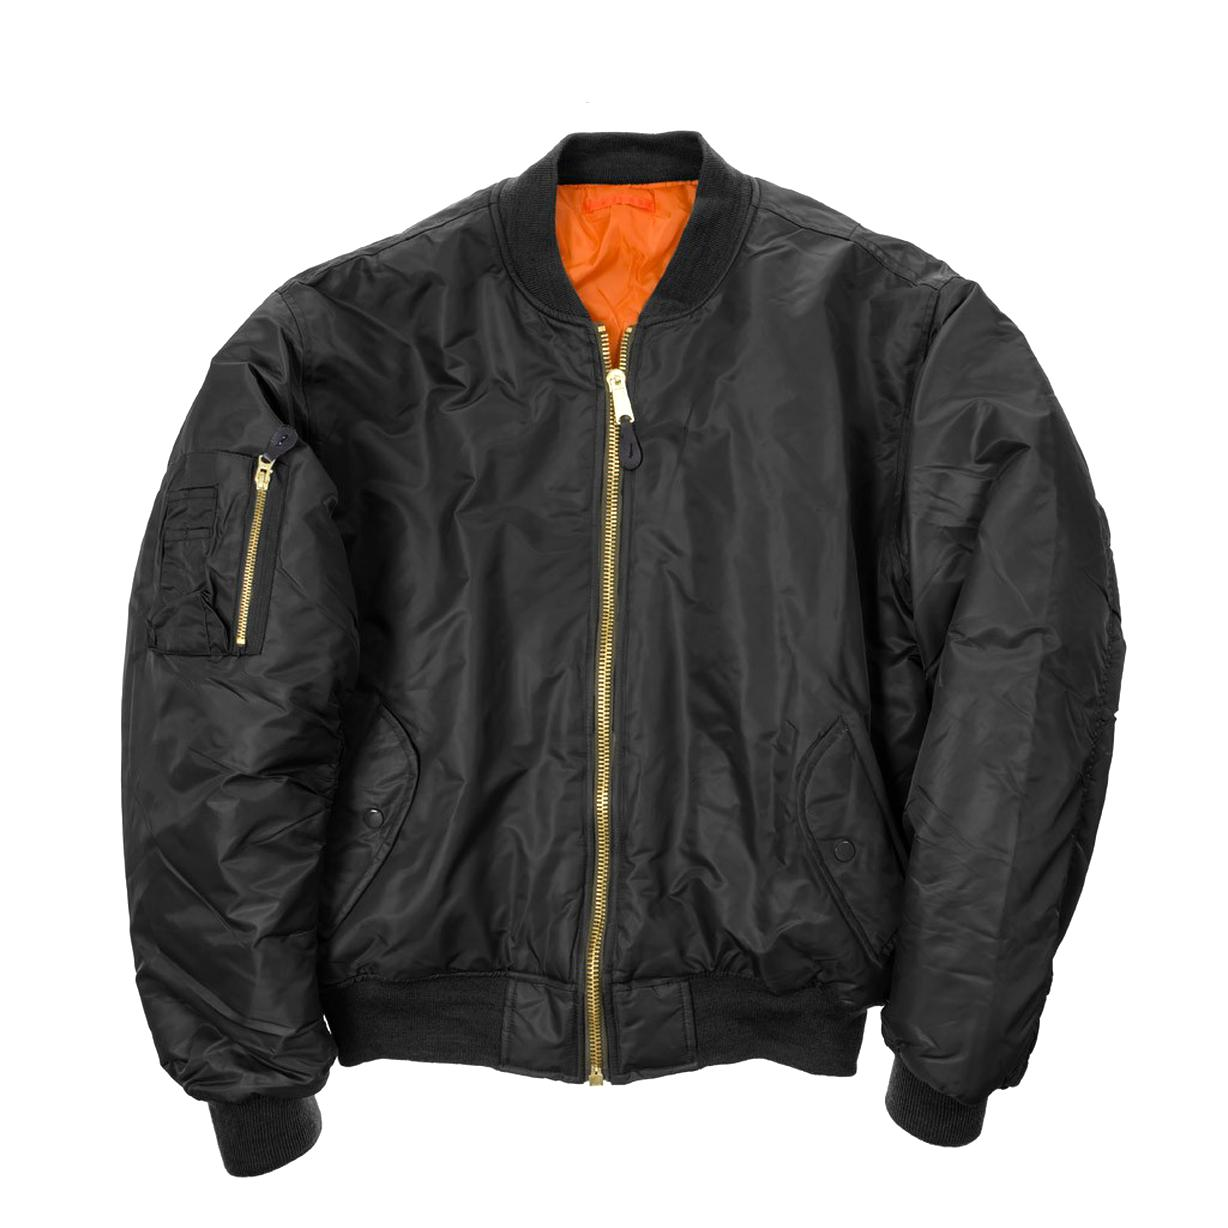 ma 1 bomber jacket for sale